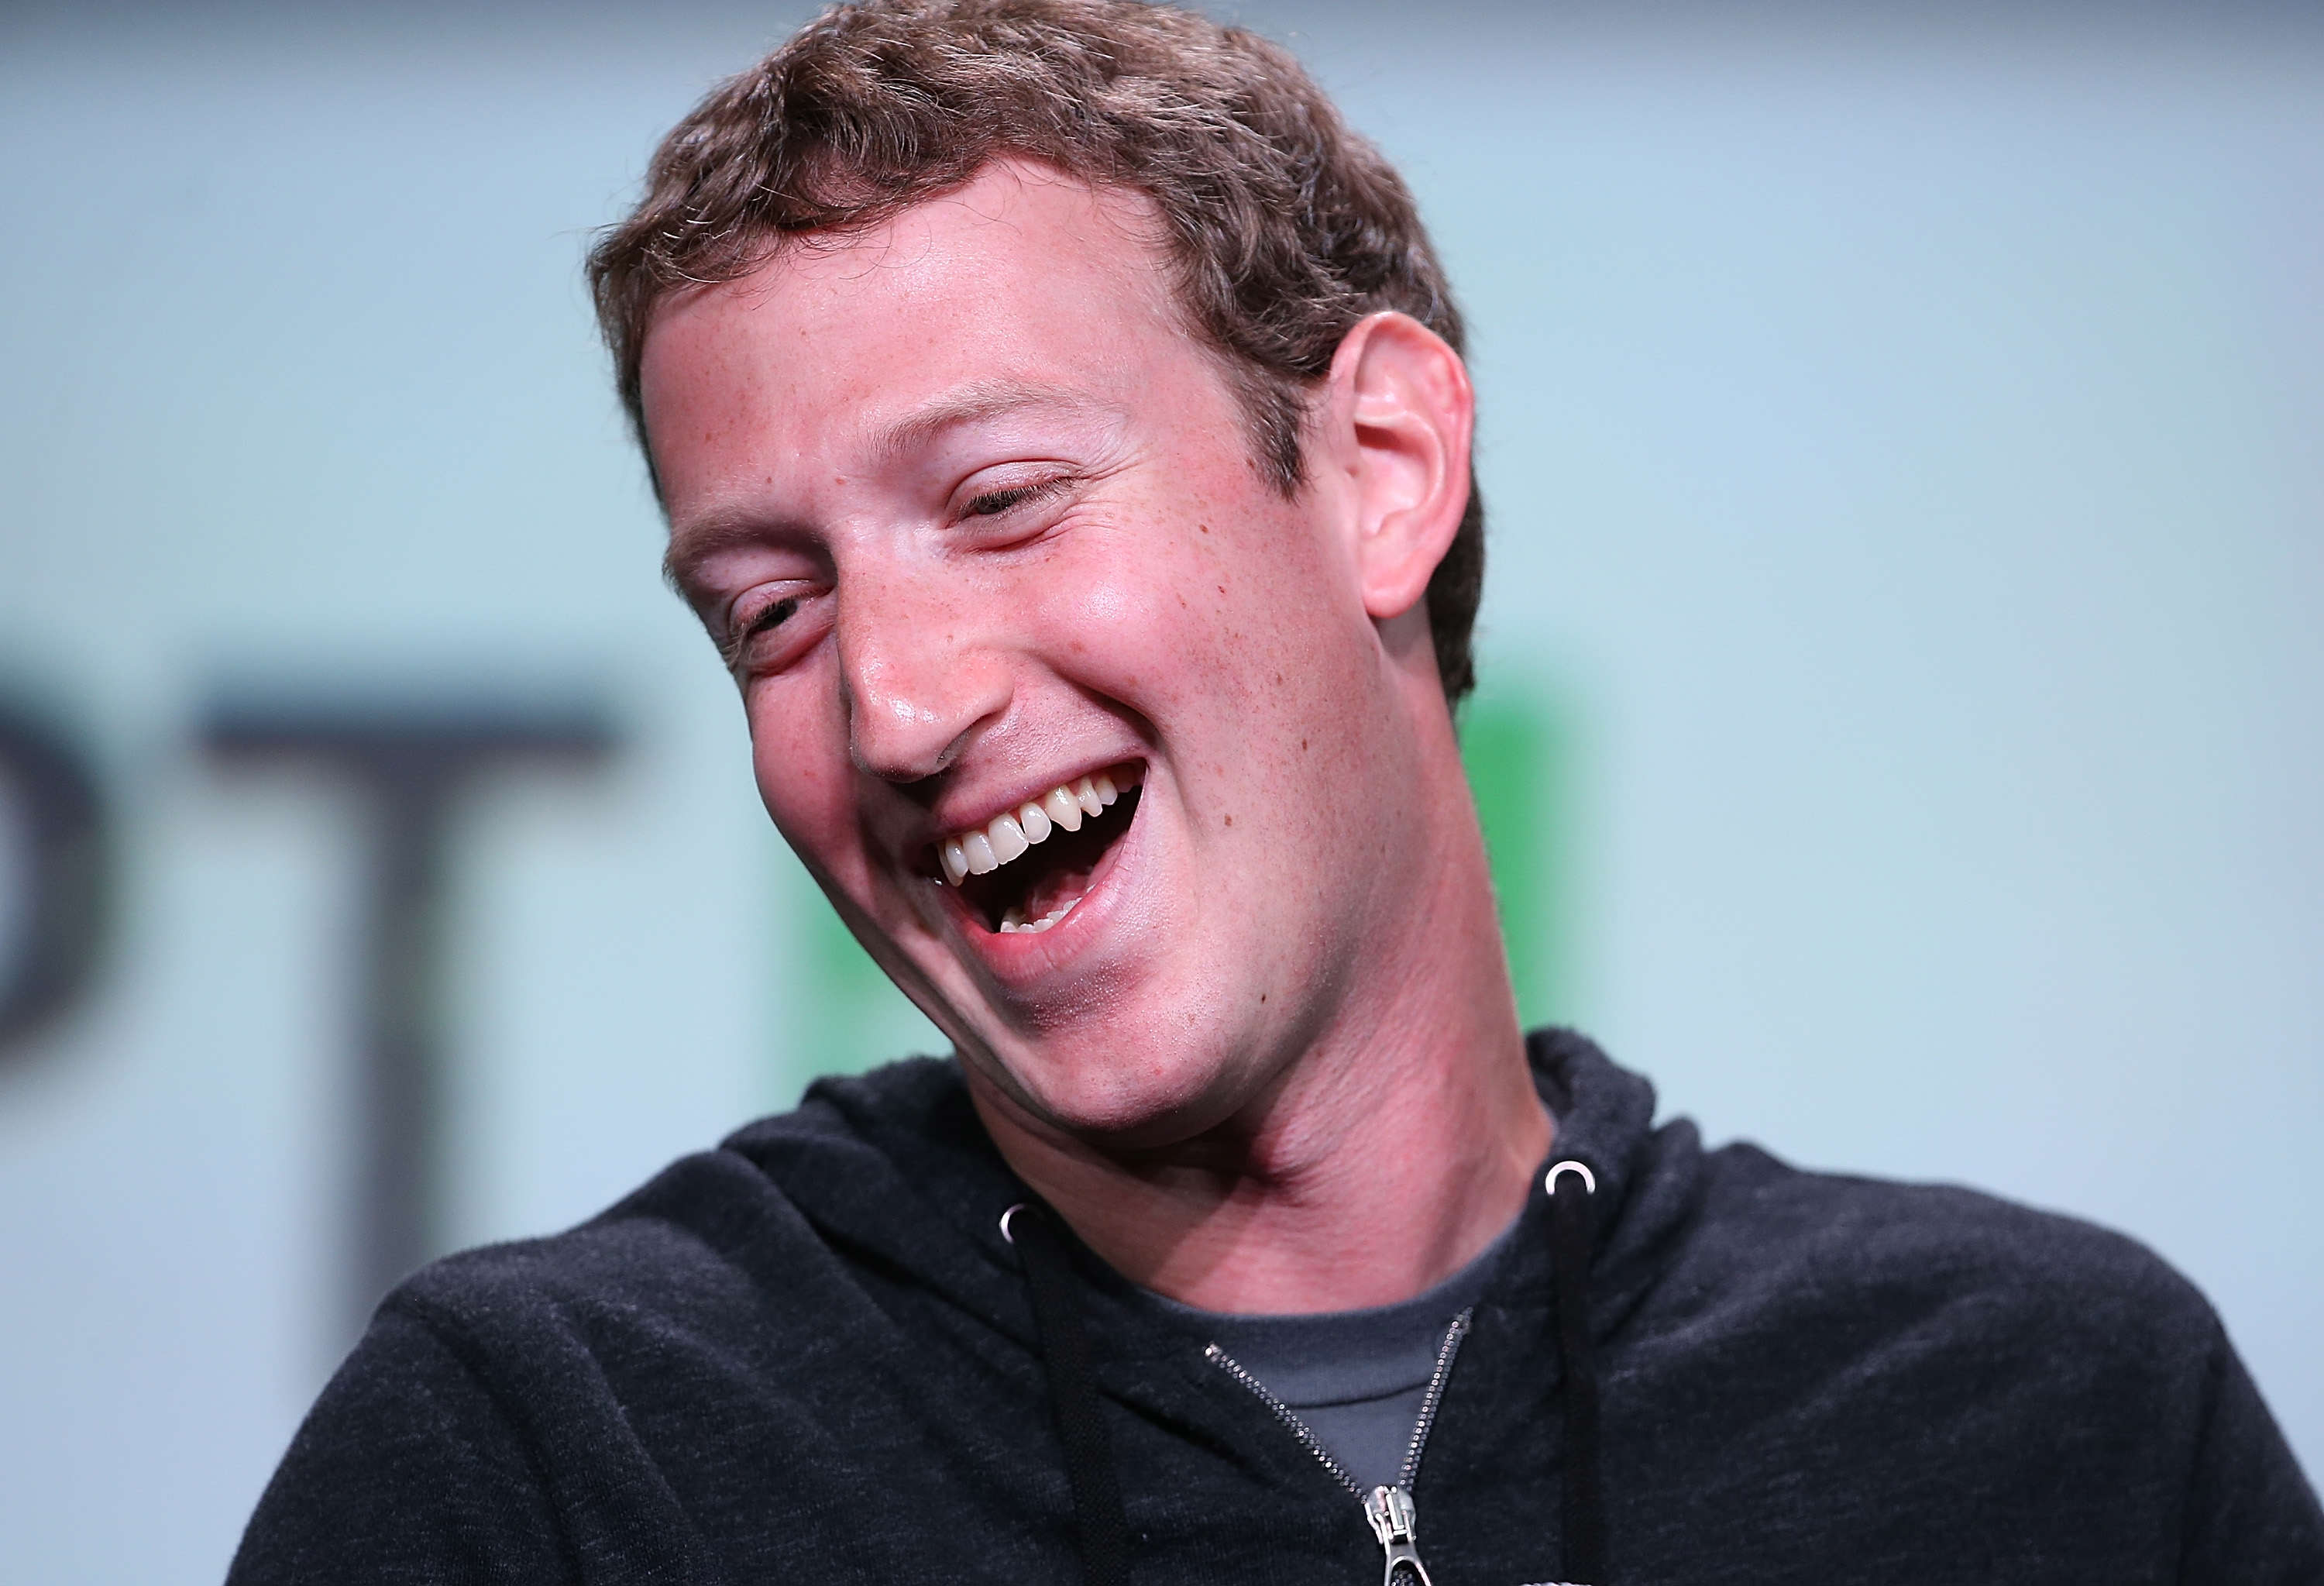 GettyImages 180336940 Mark Zuckerberg Just Earned Insane Amount Of Money In One Hour